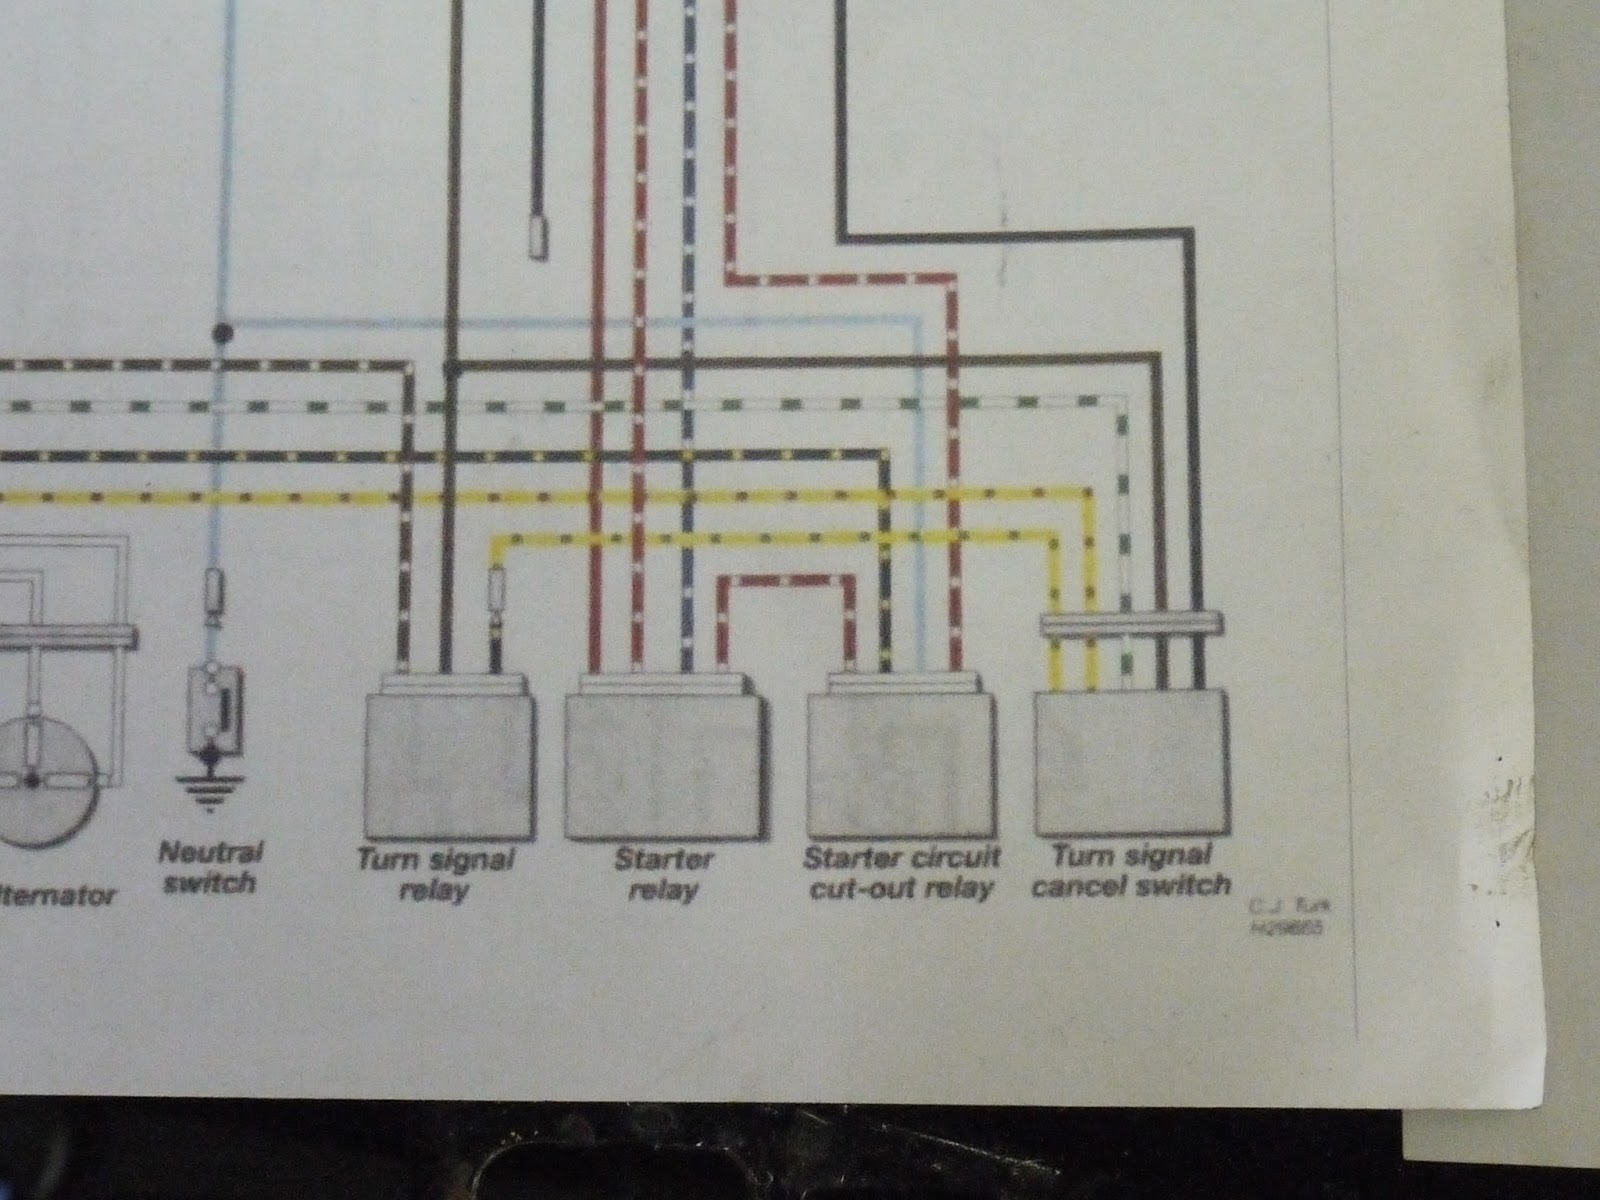 small resolution of the solenoid on the right is the one we want to eliminate the light blue cable comes down from the neutral switch and the black and yellow one from the